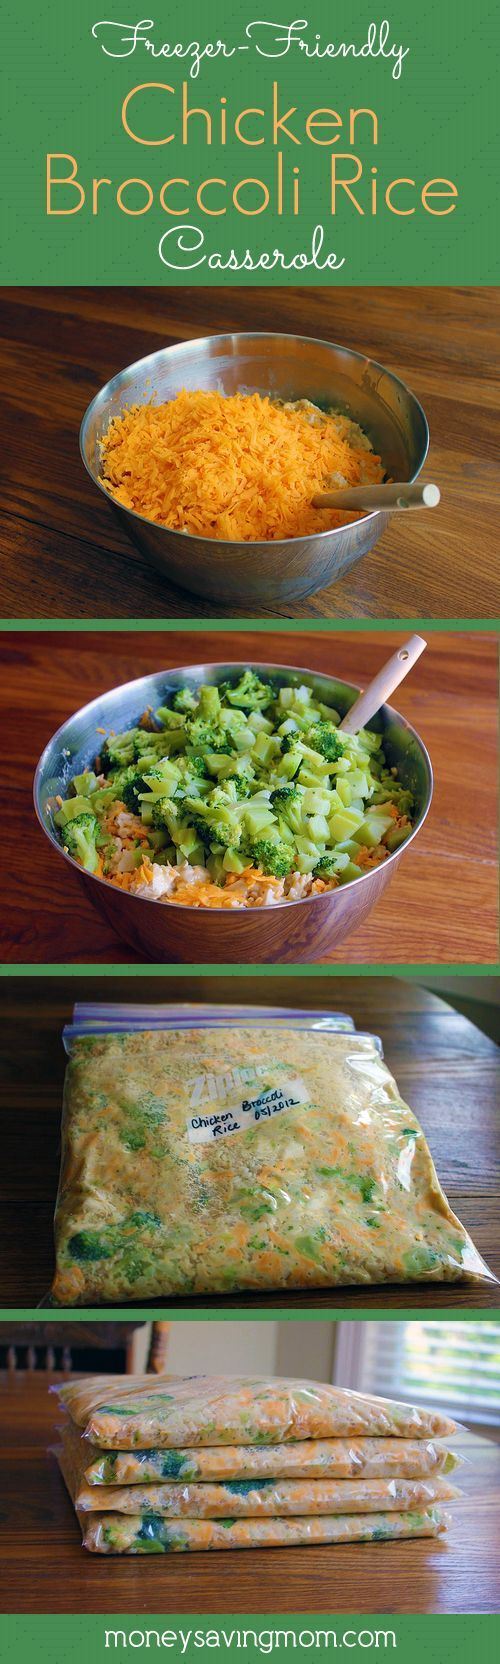 Chicken Broccoli Rice Casserole - Freezer Friendly Chicken Broccoli Rice Casserole -- This Recipe Is Hands Down One Of Our Very Favorite. It's Easy To Whip Up, It's Frugal, And It Freezes Well!